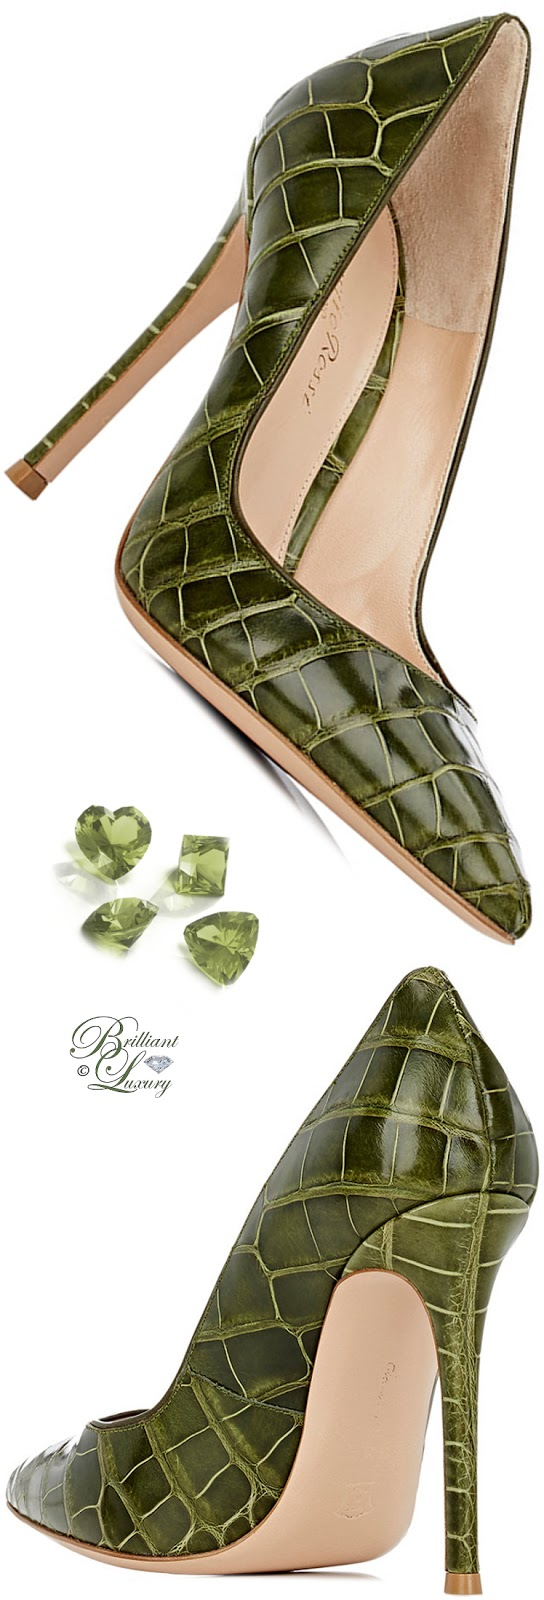 Gianvito Rossi Green Gianvito Alligator Pumps #shoes #pantone #brilliantluxury